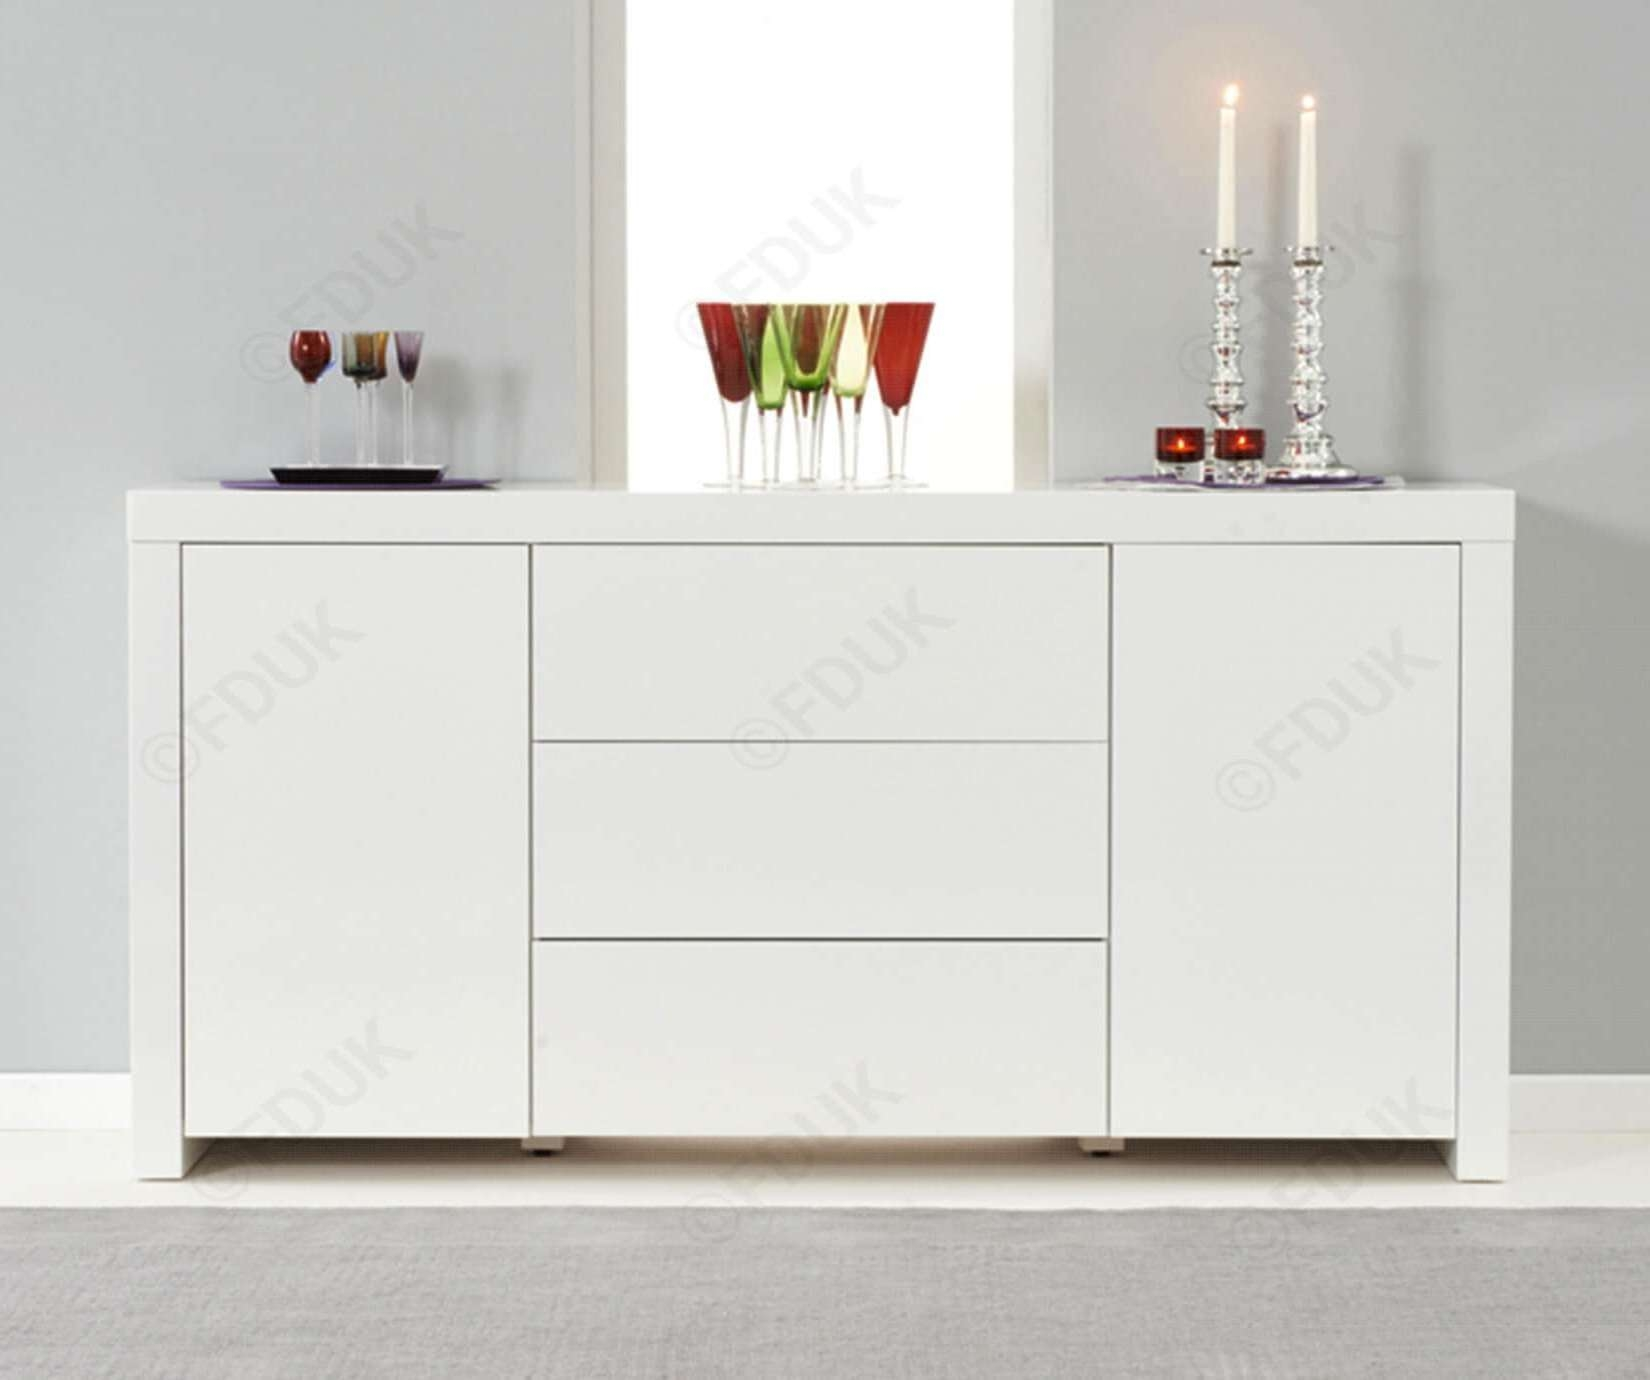 20 Photos High Gloss Sideboards For High Gloss Cream Sideboards (View 4 of 20)